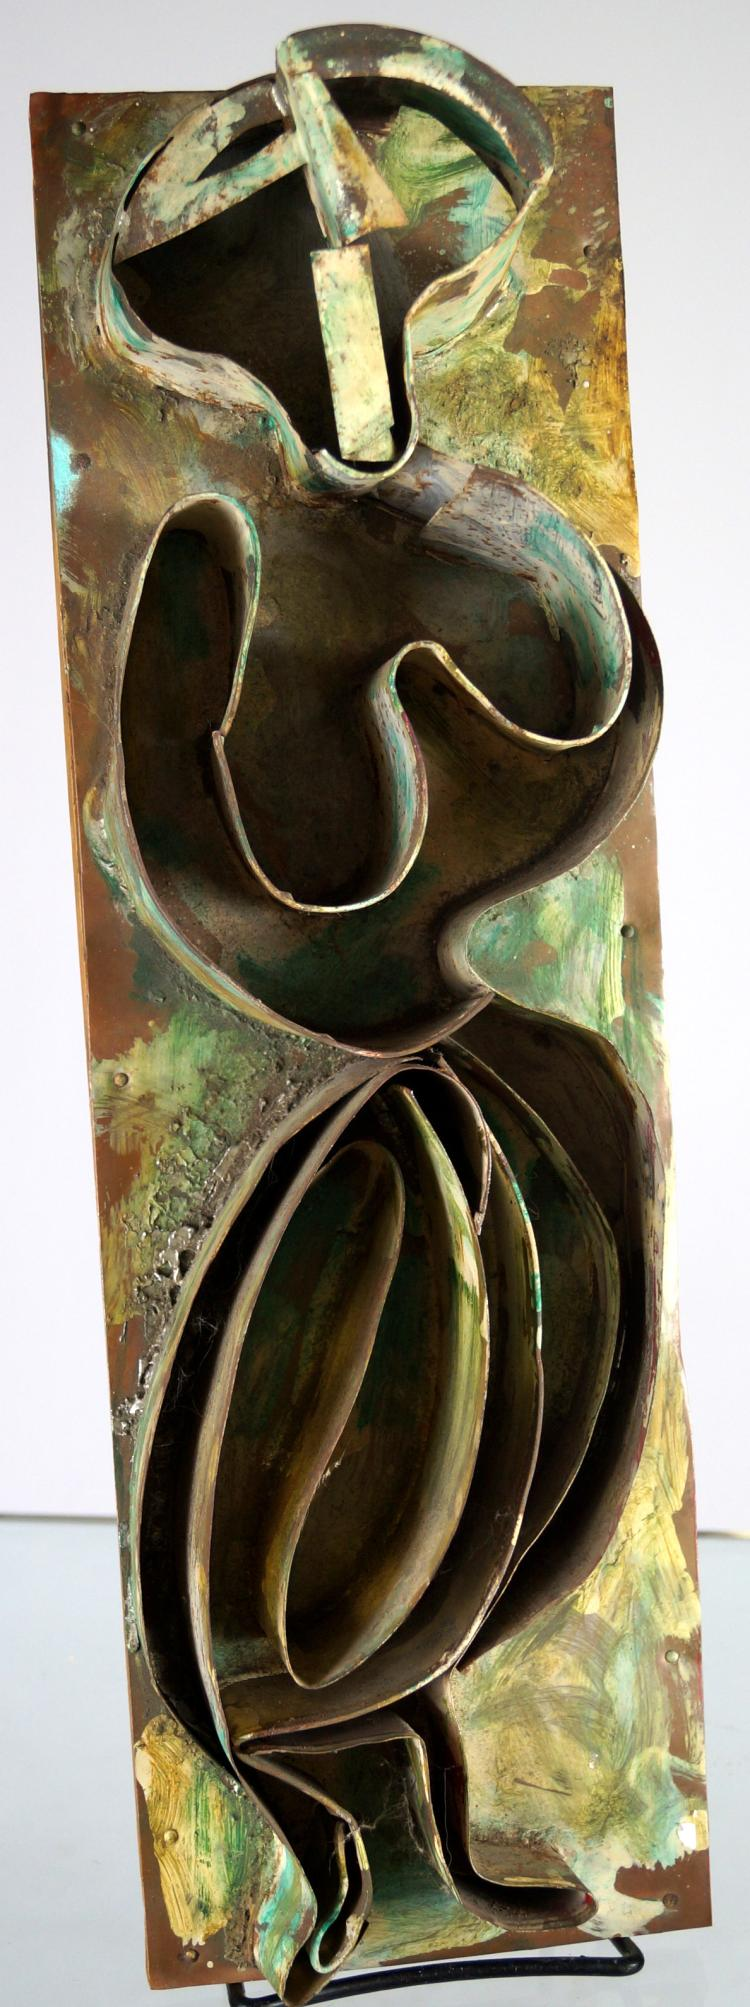 IRVING LEHMAN (AMERICAN/RUSSIAN 1900-1982), SCULPTURE, COPPER AND TIN MOUNTED ON WOOD, MODERN FIGURE, ARTIST LABEL VERSO. HEIGHT 19